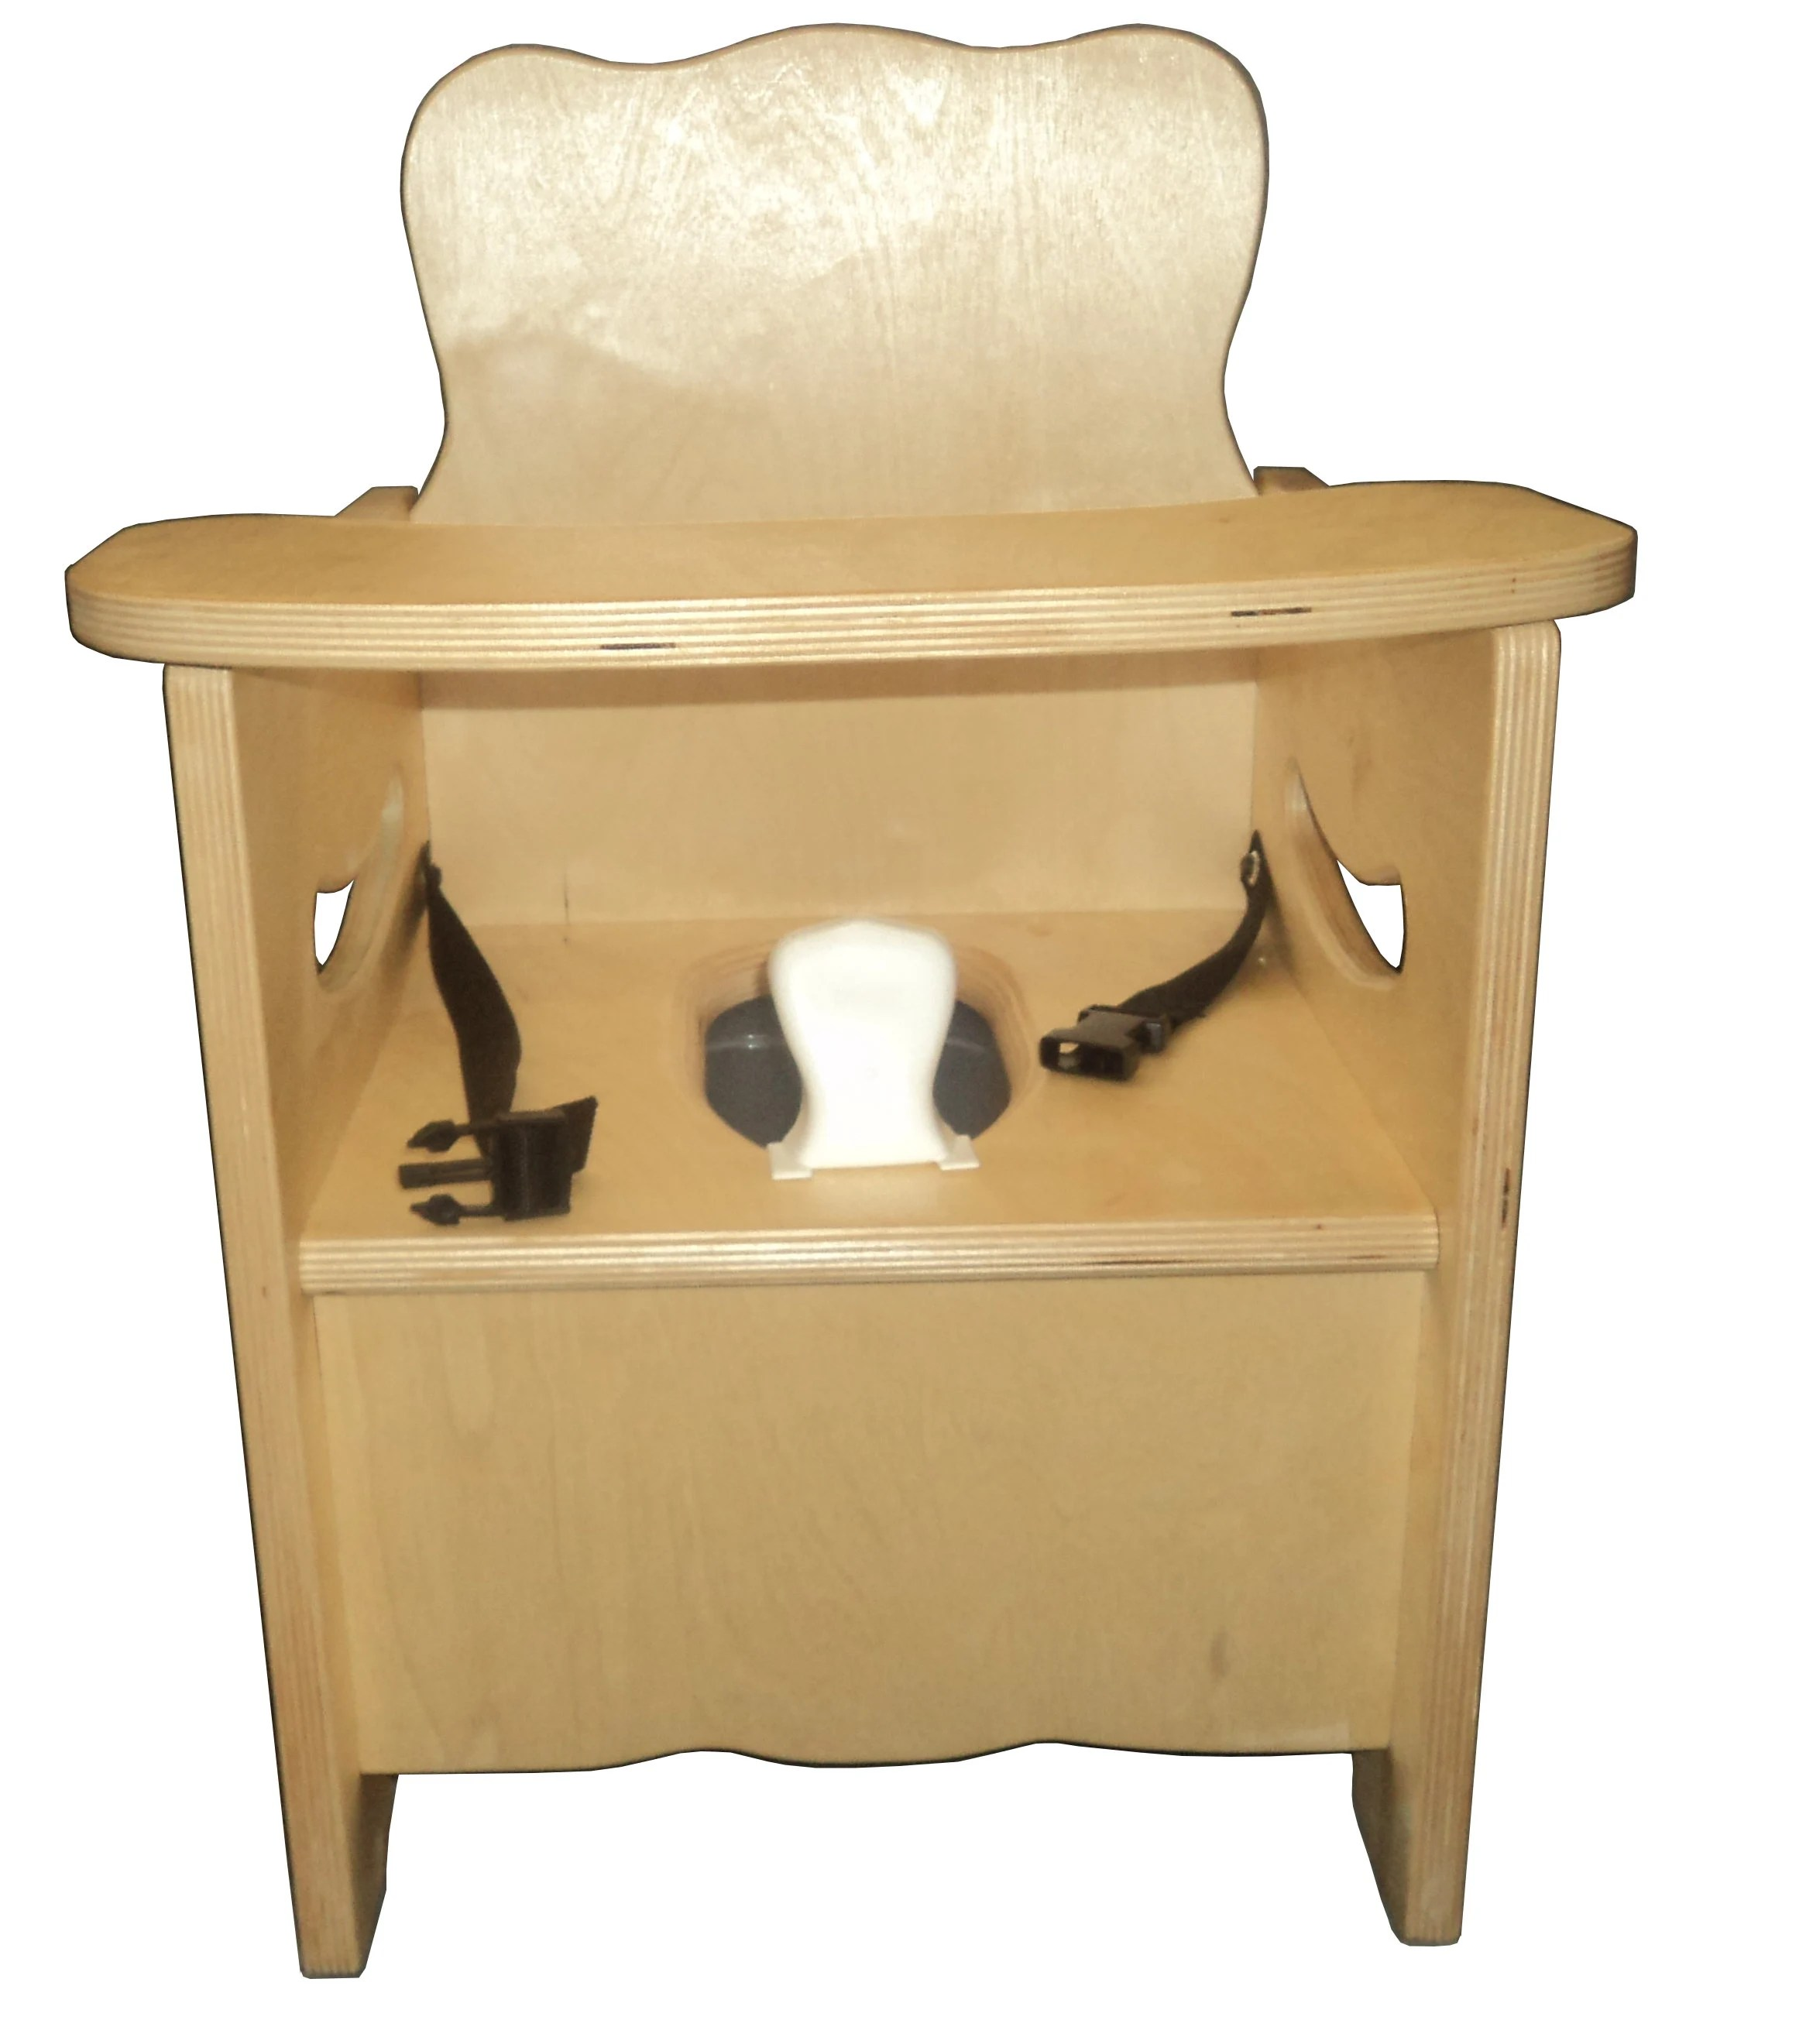 wooden potty chair and a half recliners leather new w latching tray pot pee etsy image 0